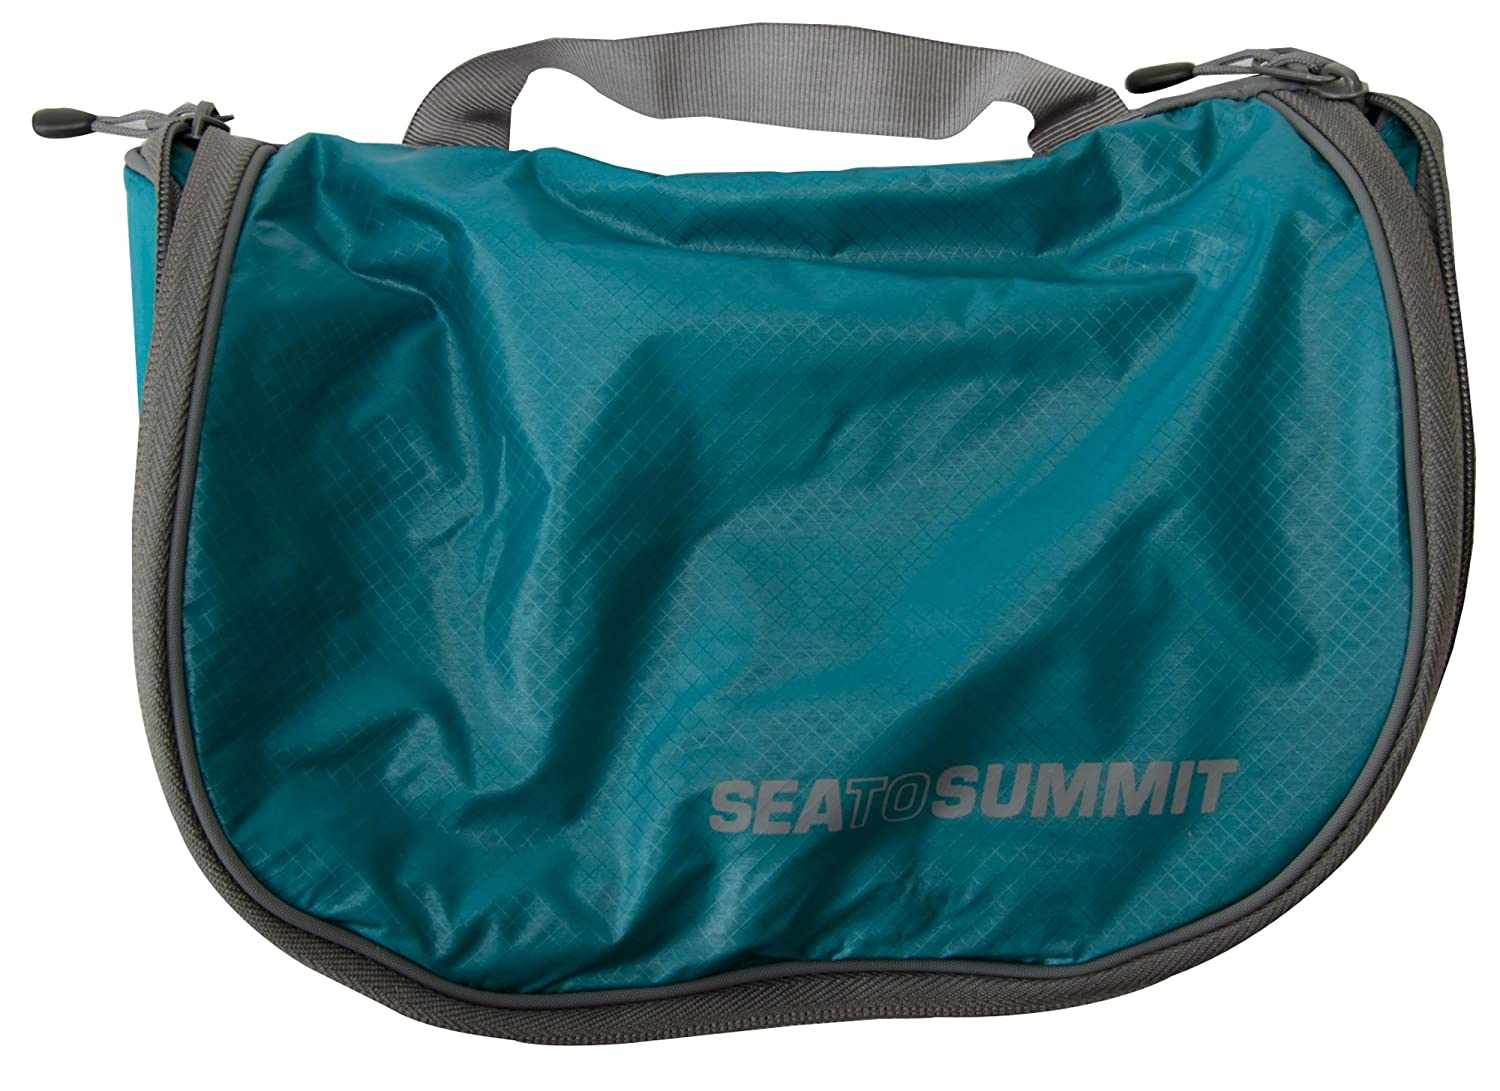 Sea to Summit Hanging Luggage organiser Small grey/blue 2018 1700141